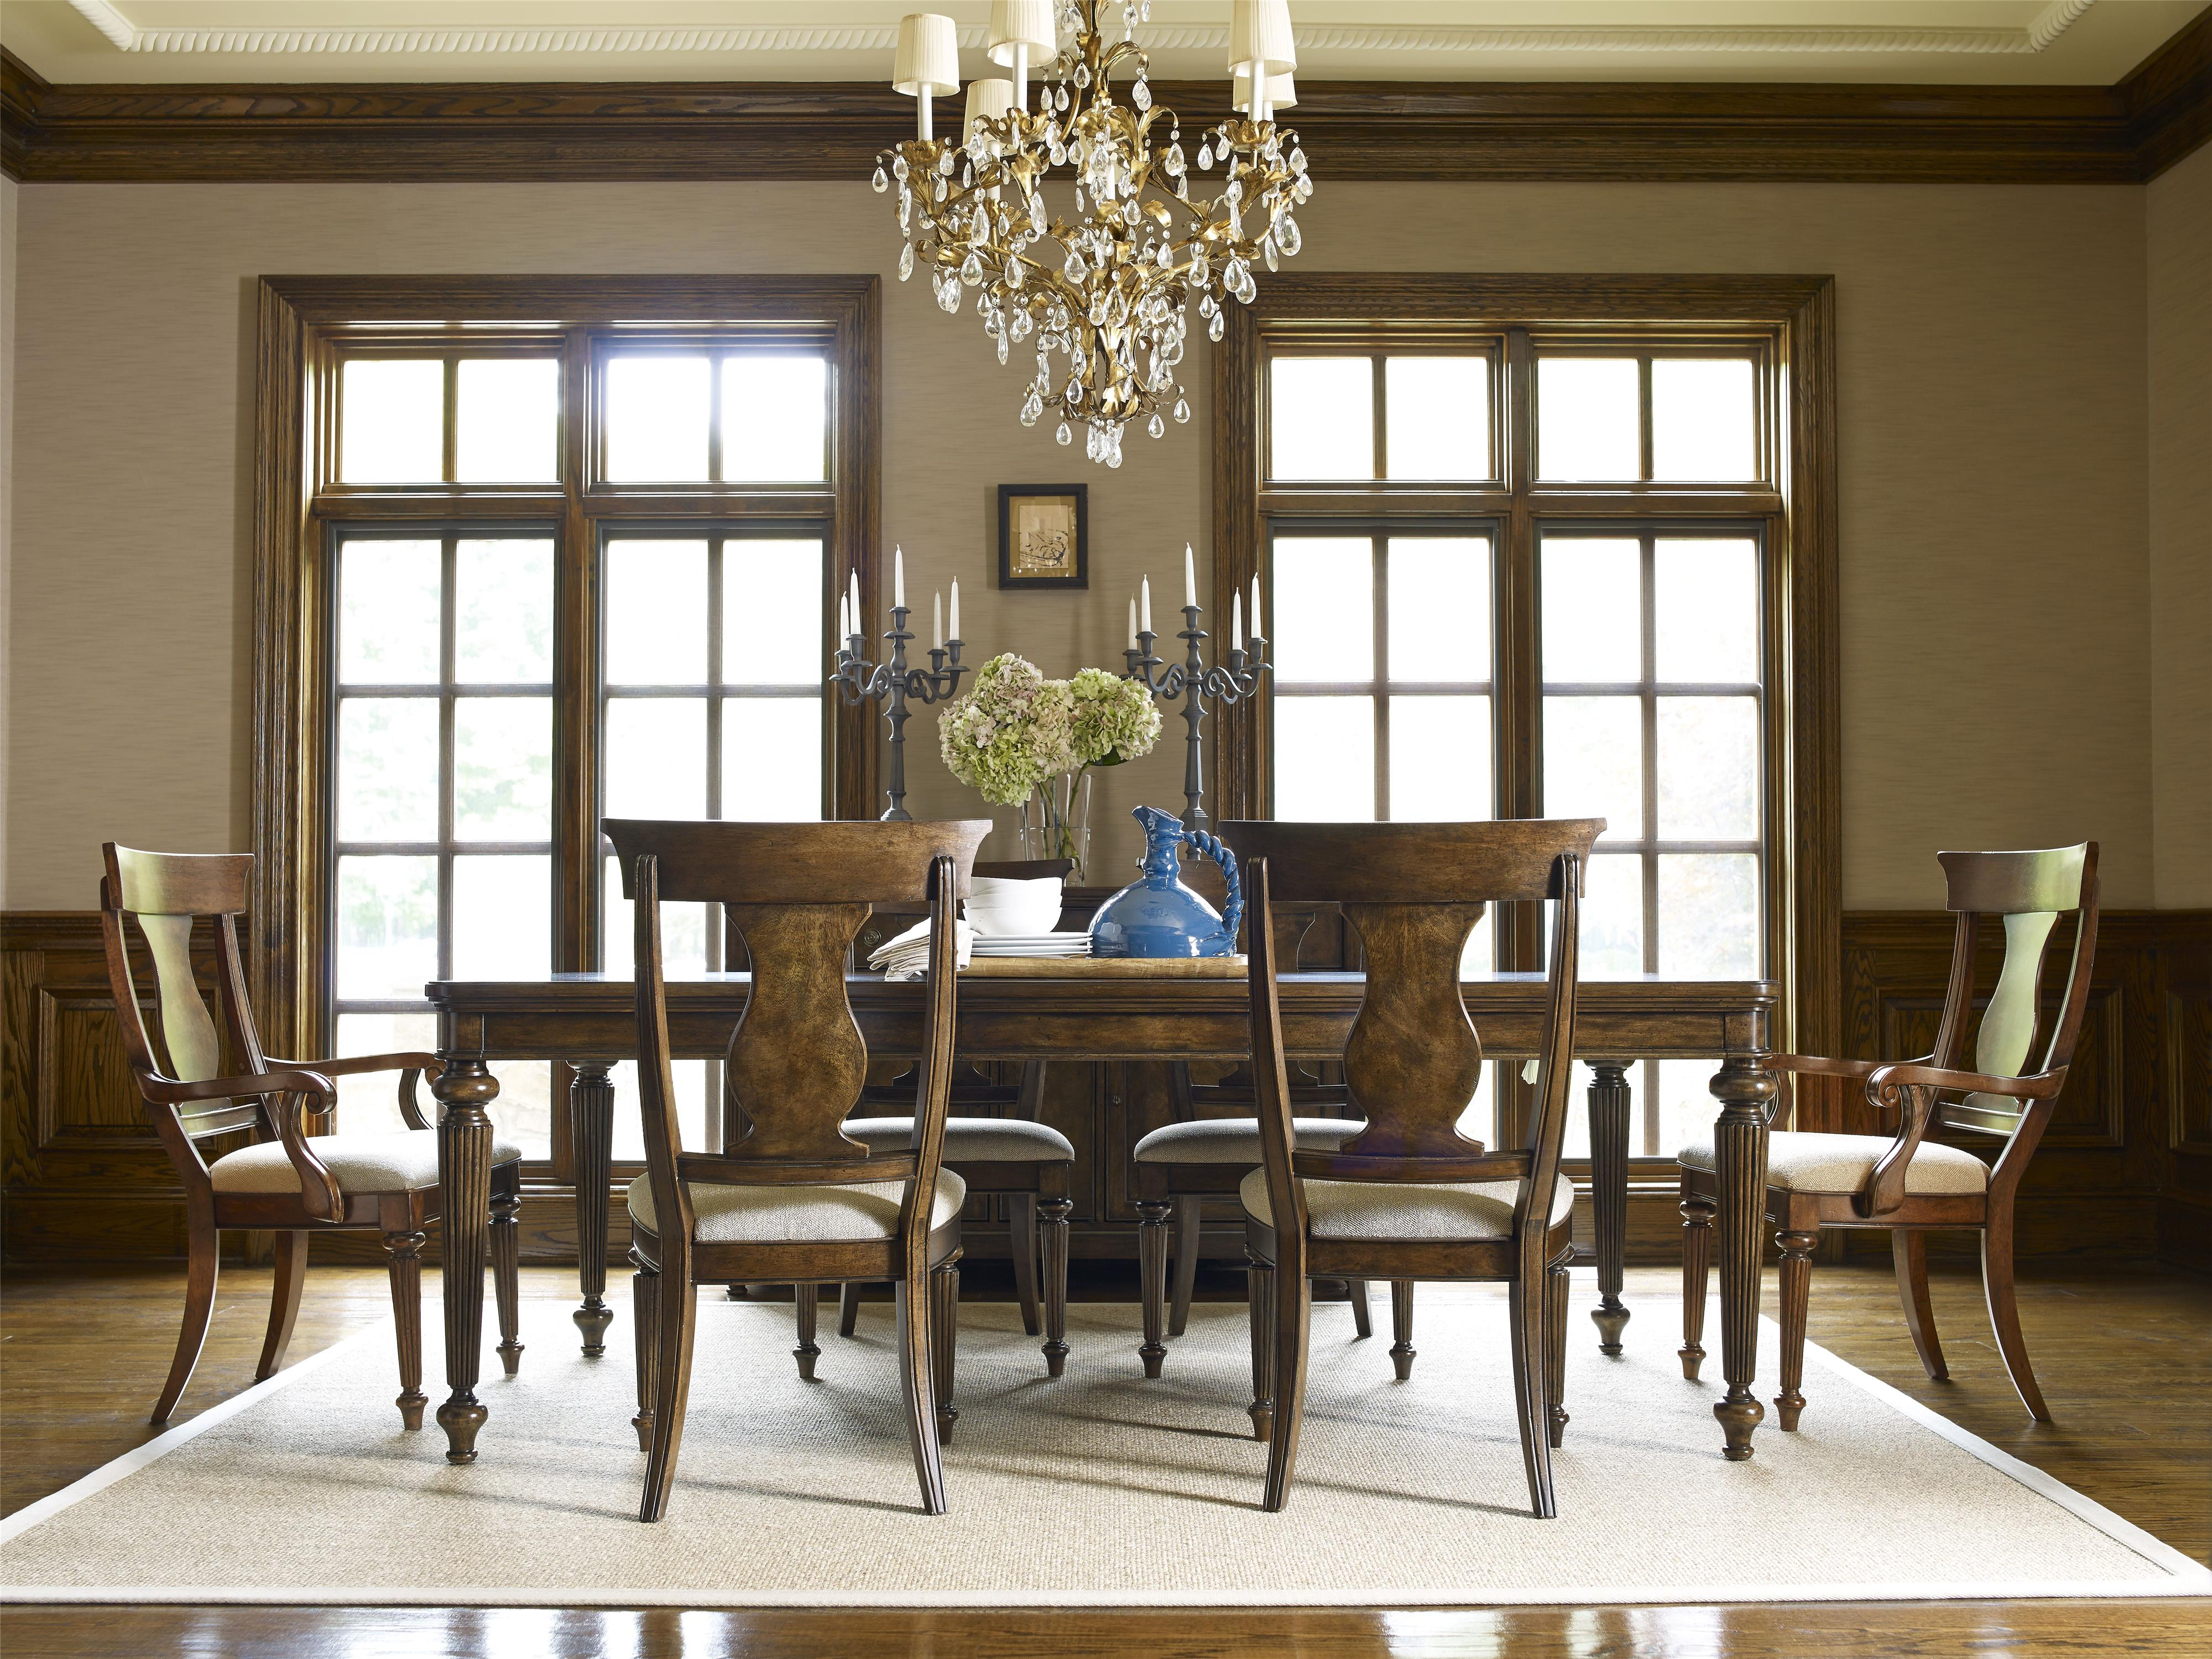 Legacy Classic Barrington Farm Formal Dining Room Group - Item Number: 5200 Dining Room Group 1